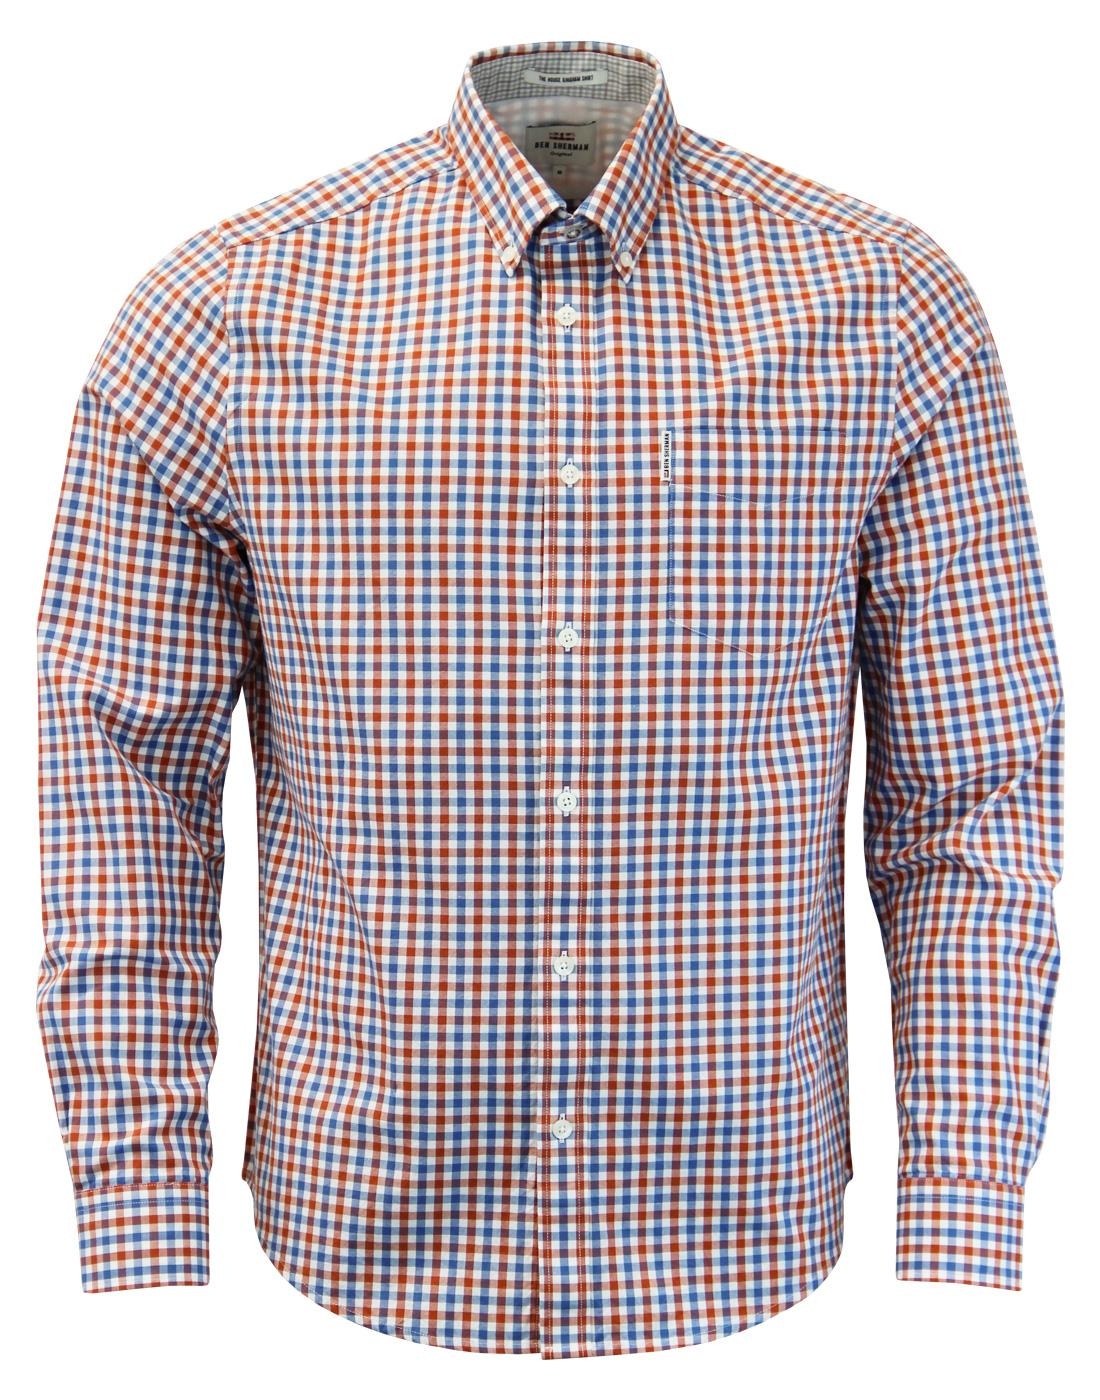 BEN SHERMAN Mod 60s House Gingham Shirt in Red